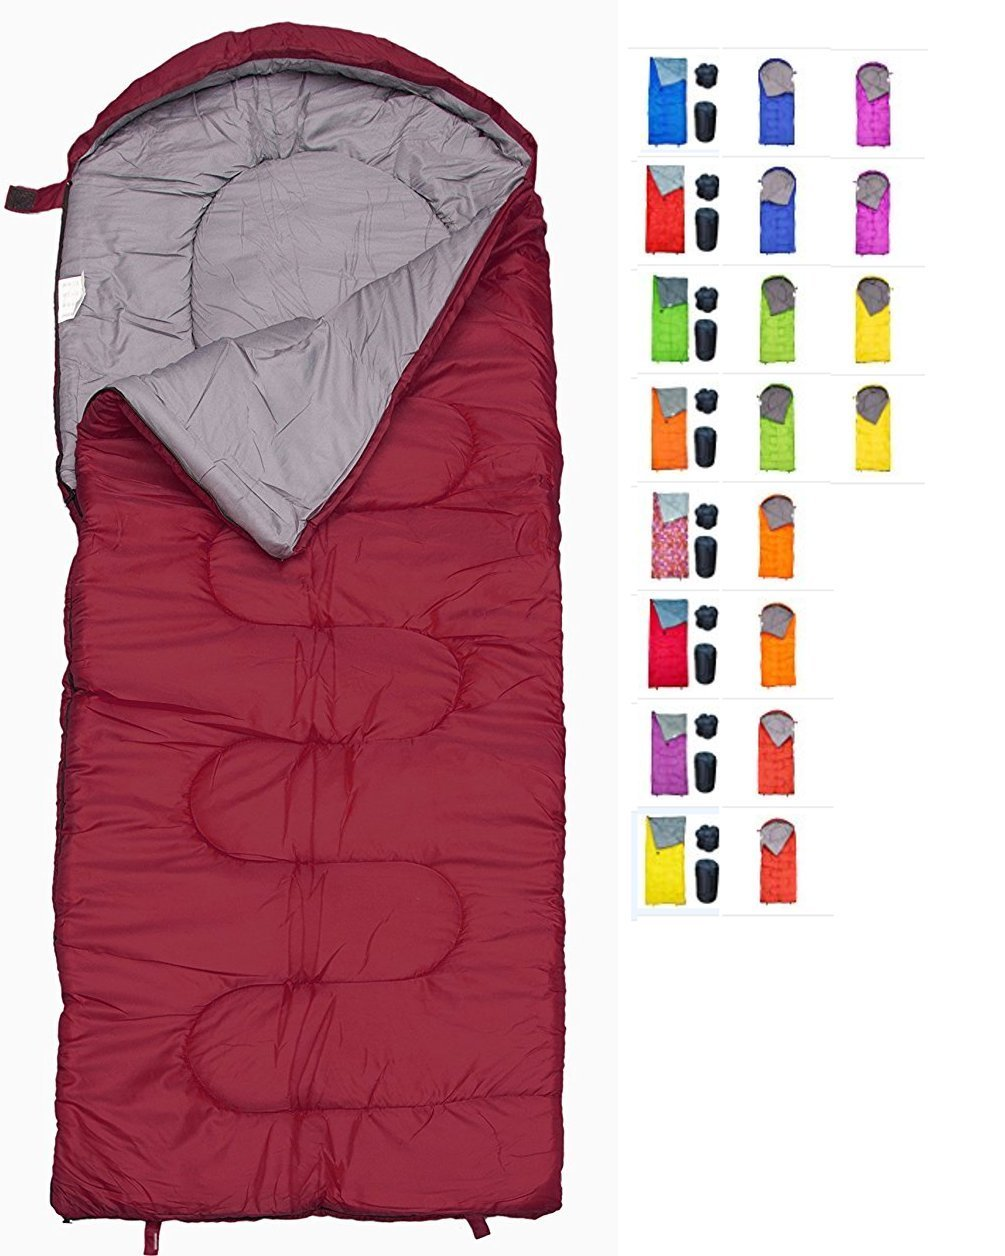 REVALCAMP Sleeping Bag for Cold Weather - 4 Season Envelope Shape Bags by Great for Kids, Teens & Adults. Warm and Lightweight - Perfect for Hiking, Backpacking & Camping (Bordeaux - Right Zip)